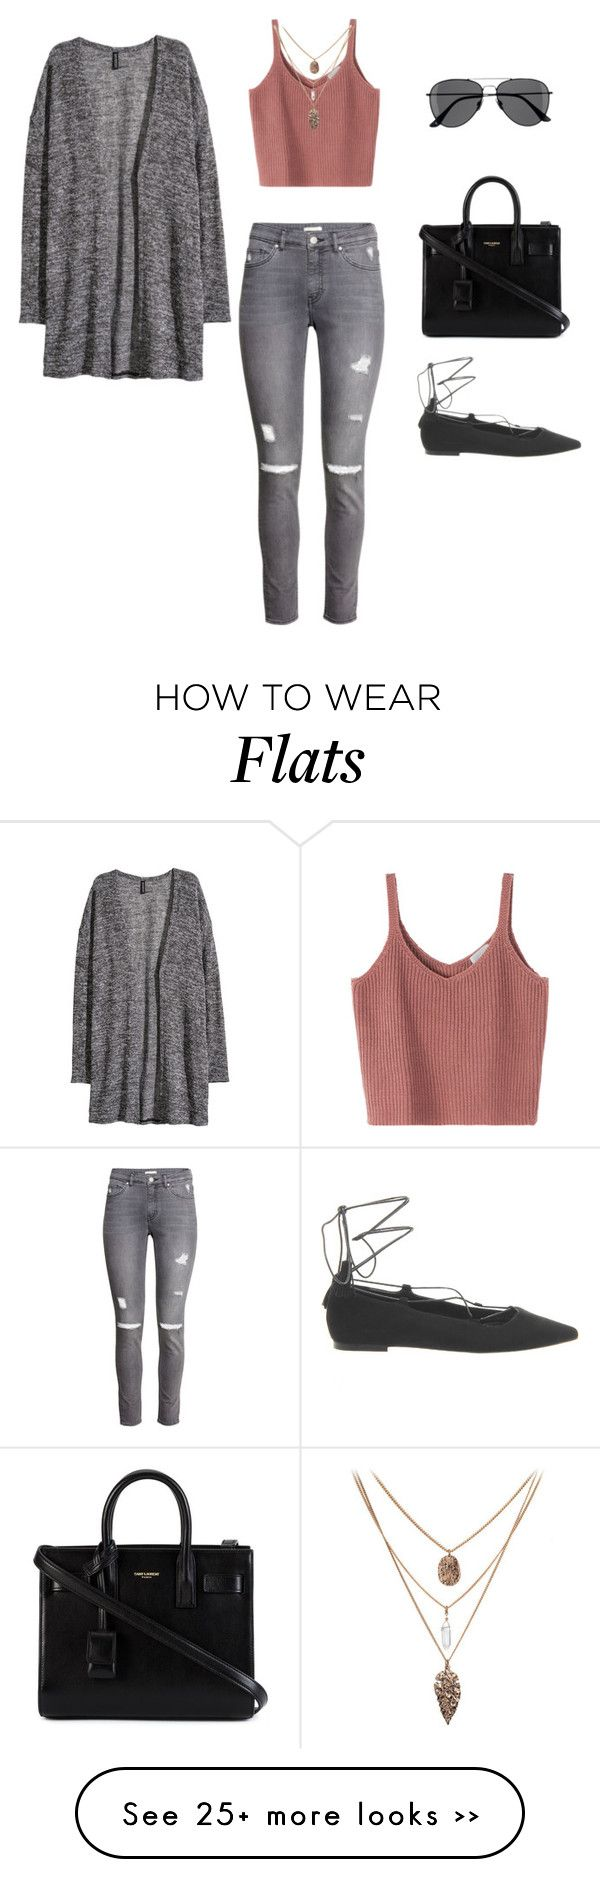 """""""Salmon & Gray"""" by leengardini on Polyvore featuring H&M, Office and Yves Saint Laurent"""